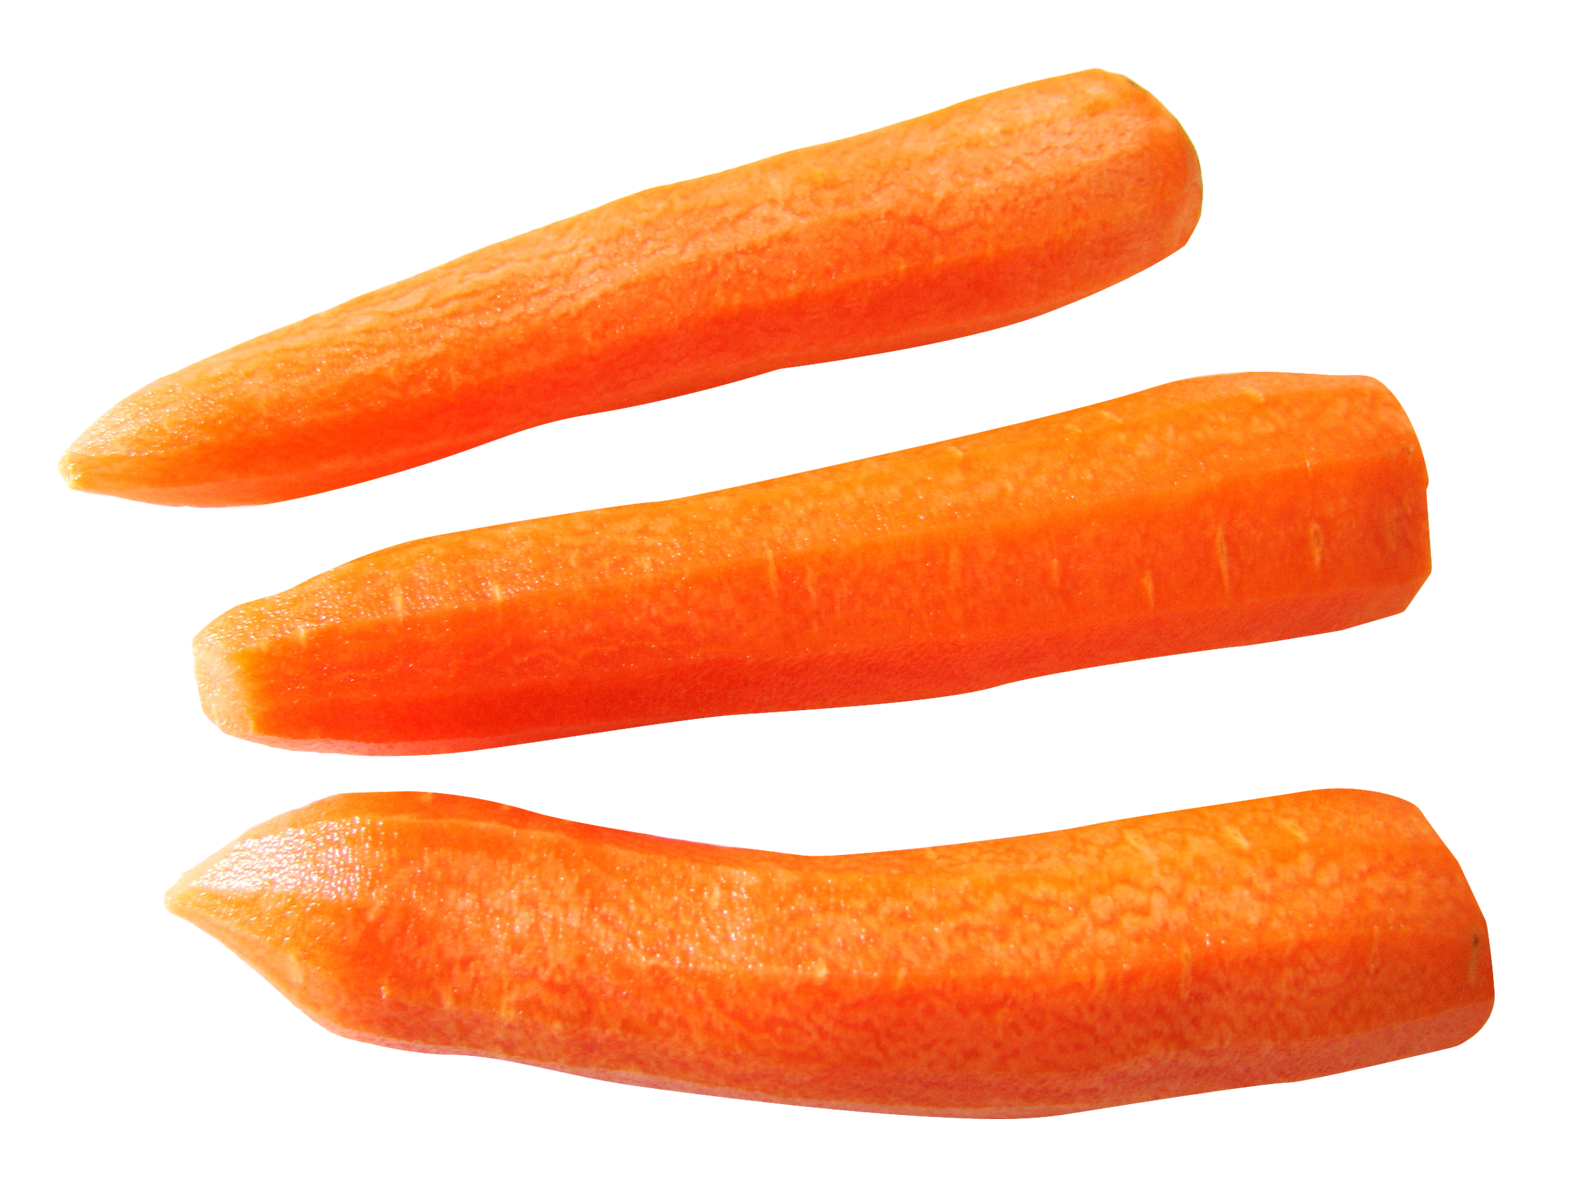 png free download Free png transparent images. Vector carrot sliced